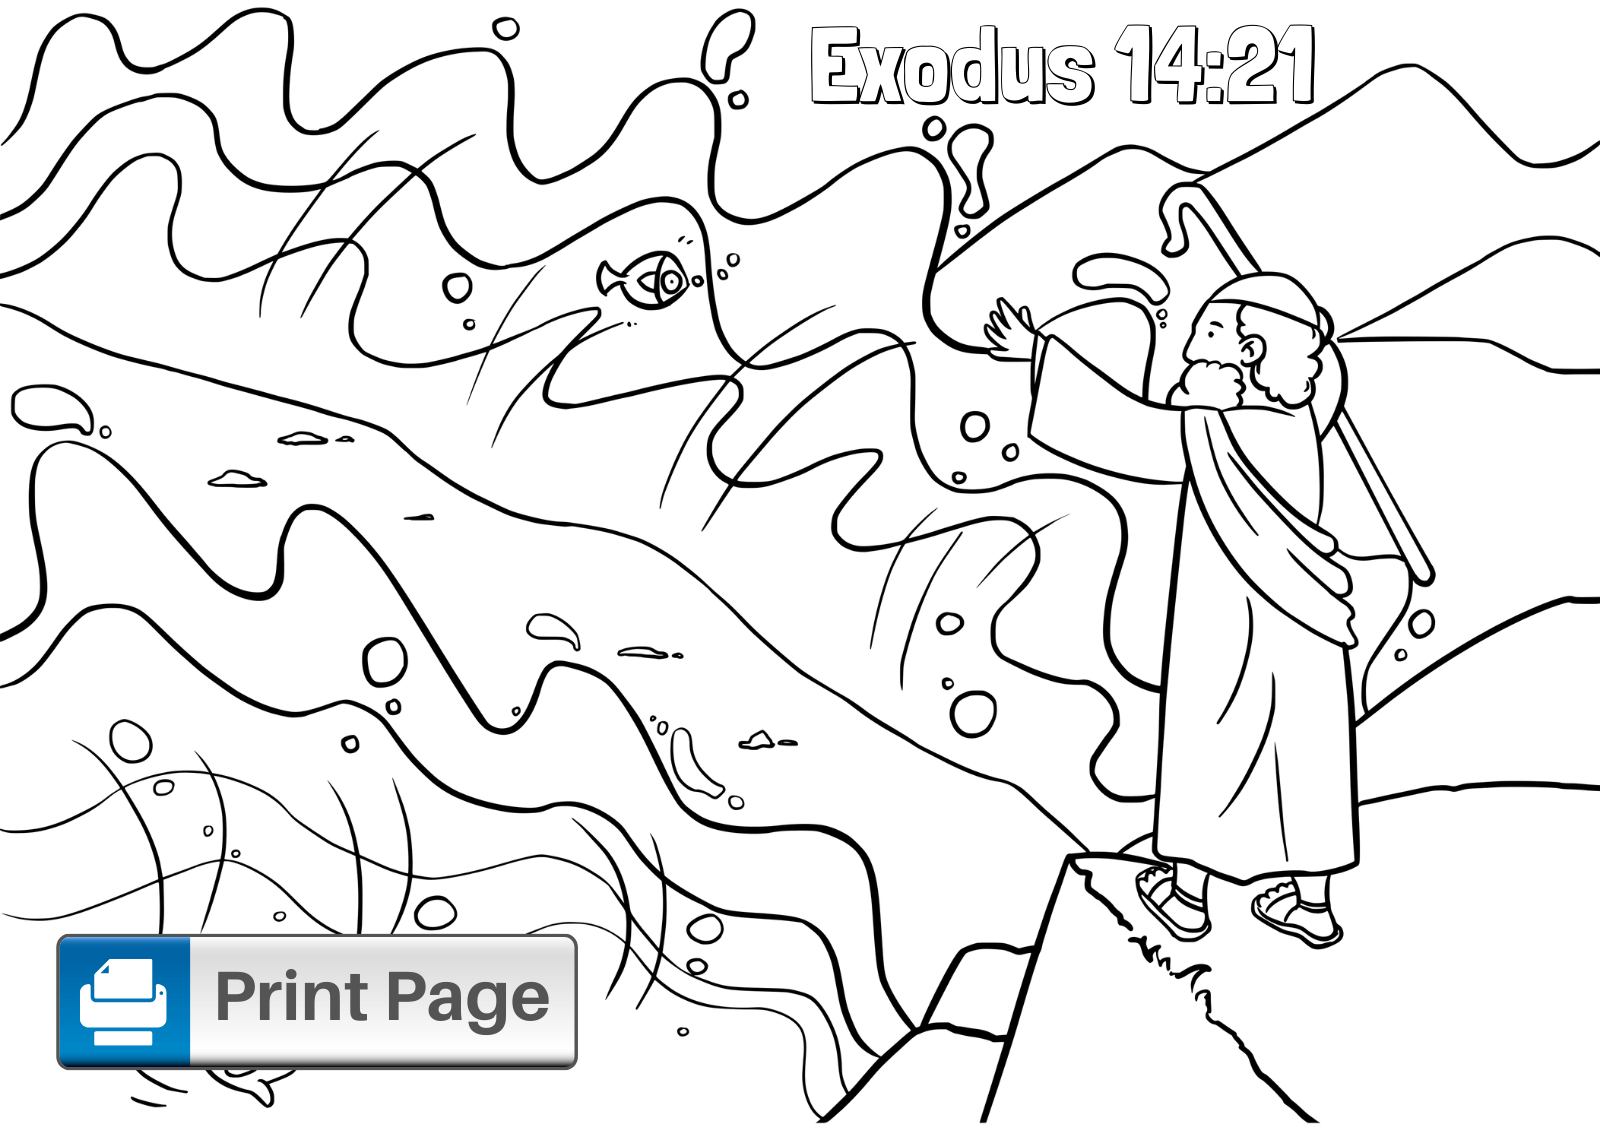 Free Moses Parting the Red Sea Coloring Pages